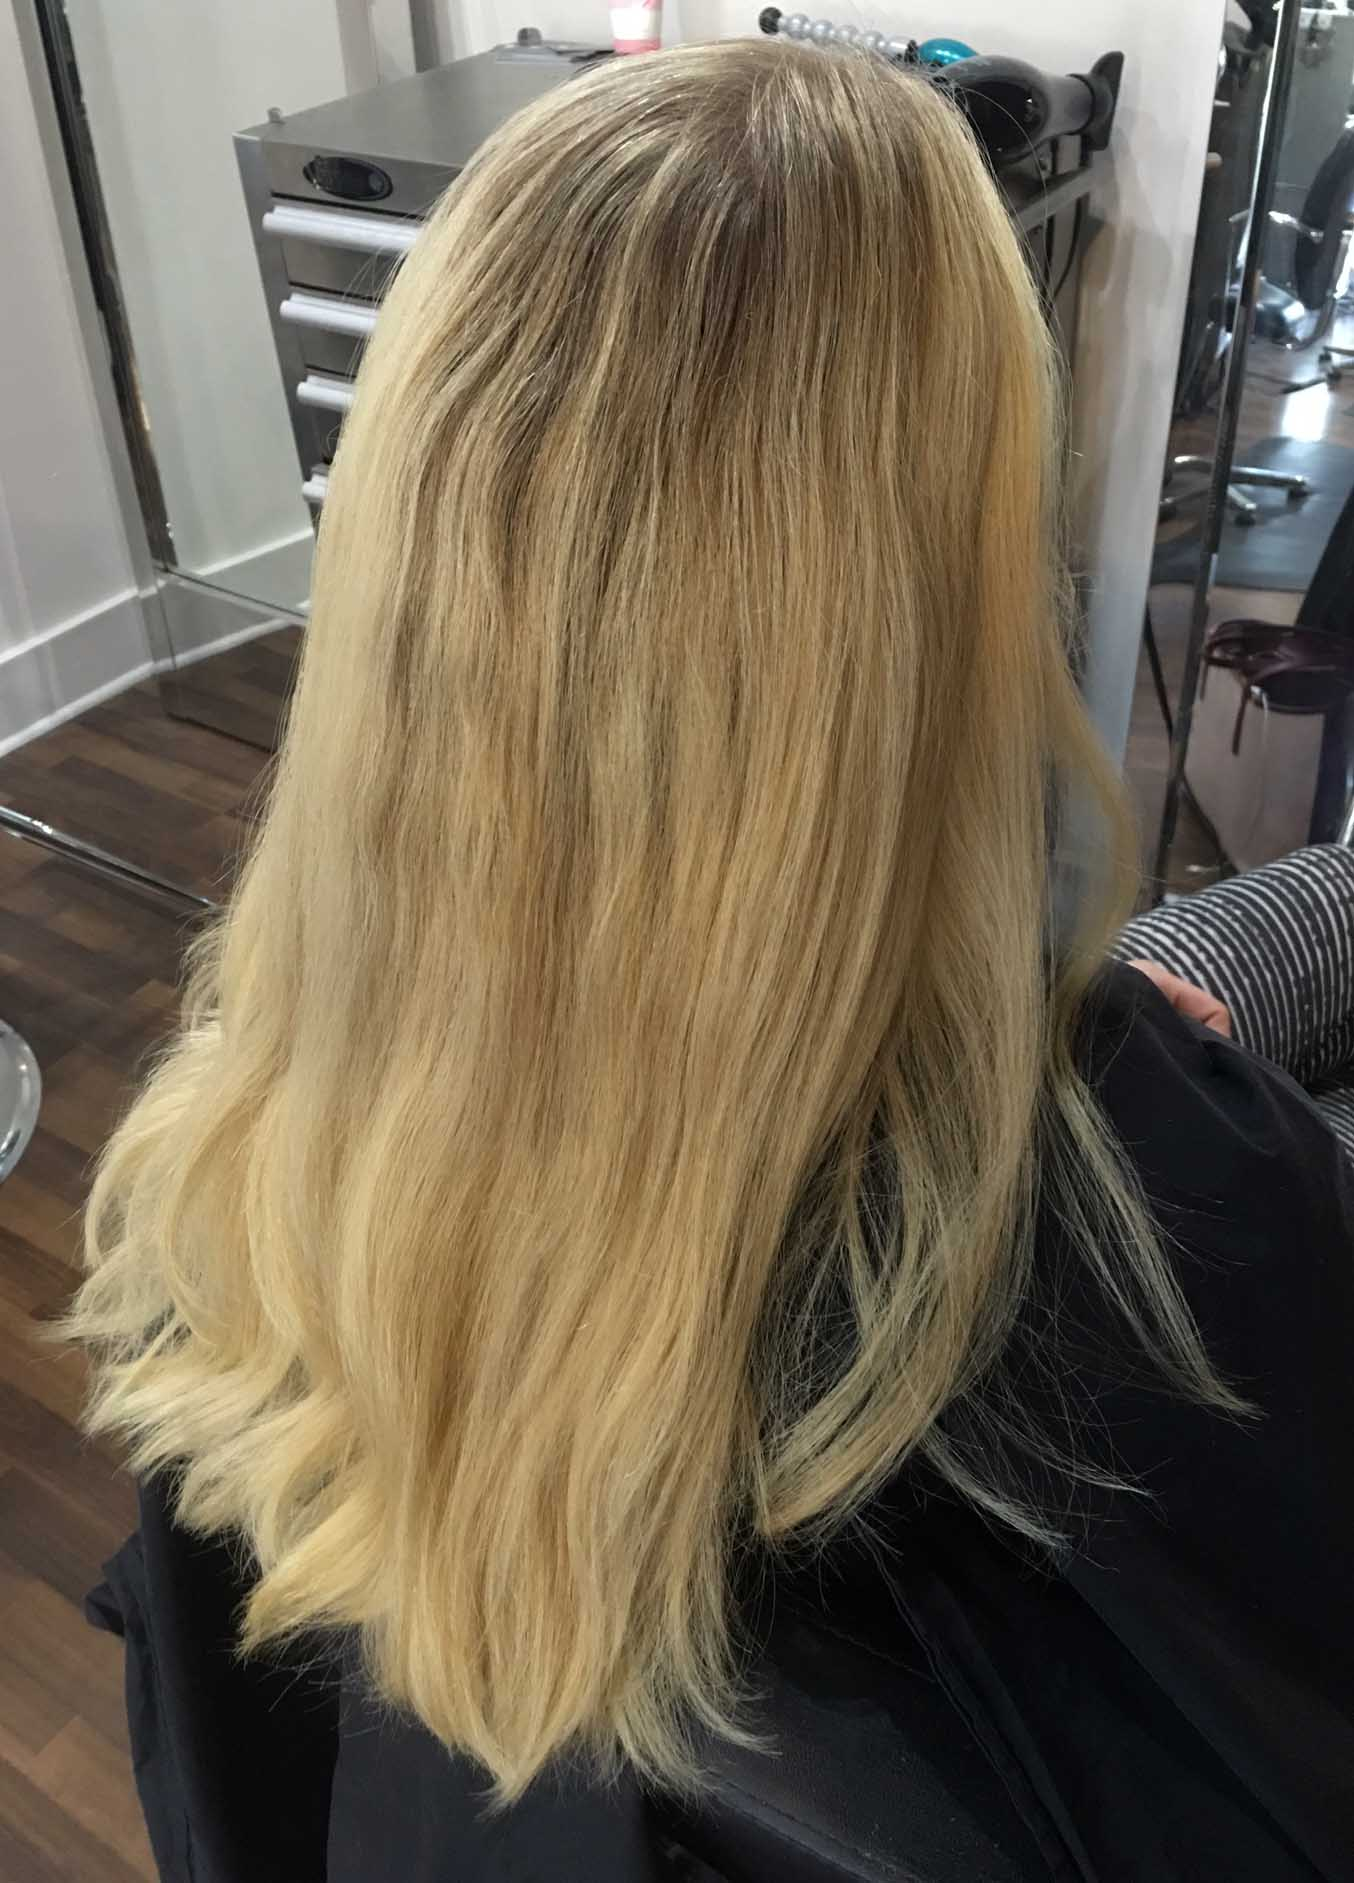 Blonde Hair Repair And Makeover With Extensions Mommy Makeover Pt3